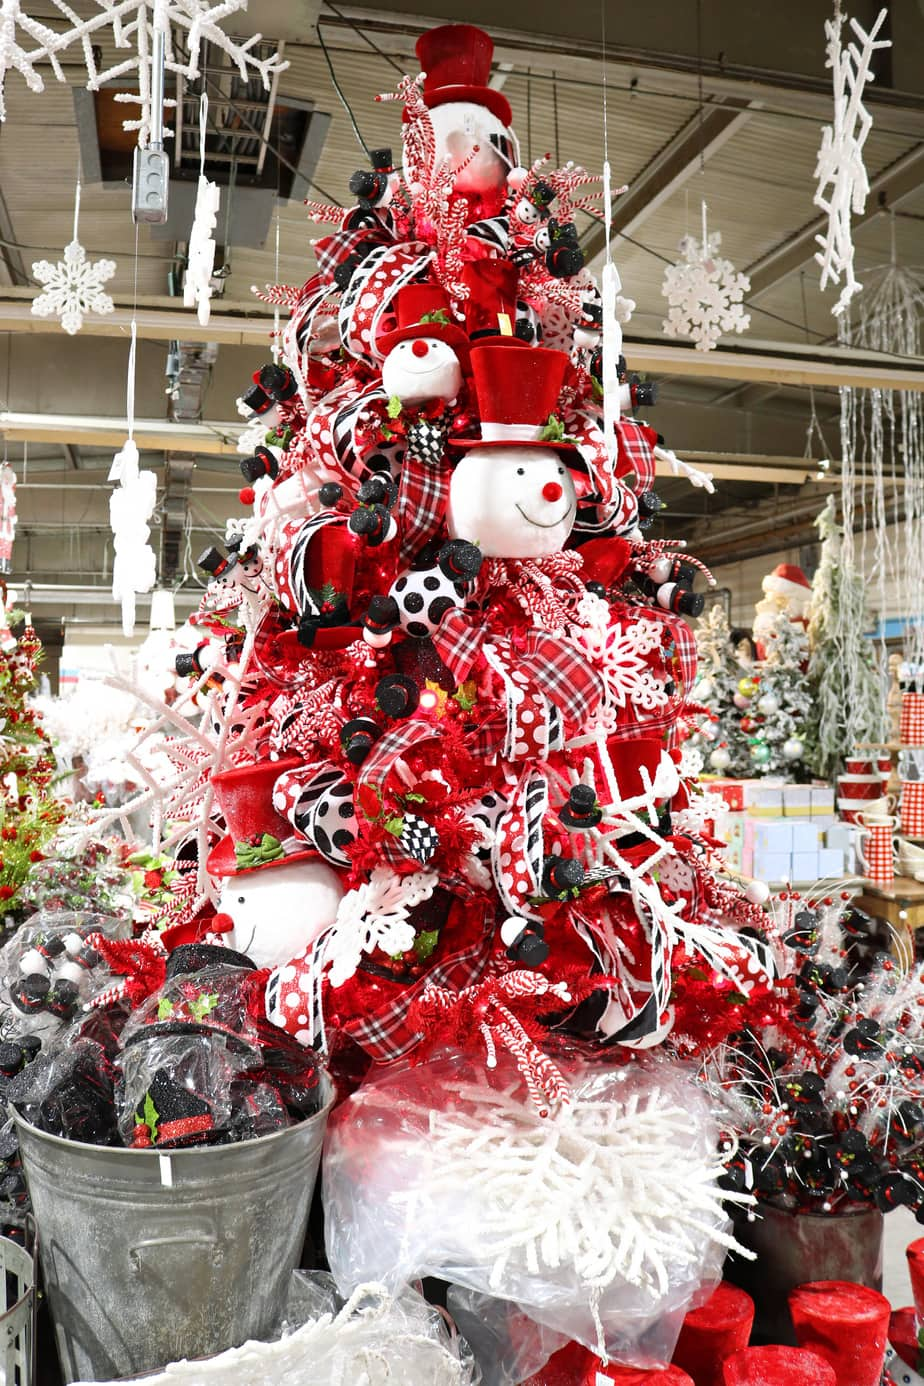 (AD) Snowman Christmas Tree Inspiration at Guess and Company Warehouse Sale. EasyPeasyPleasy.com